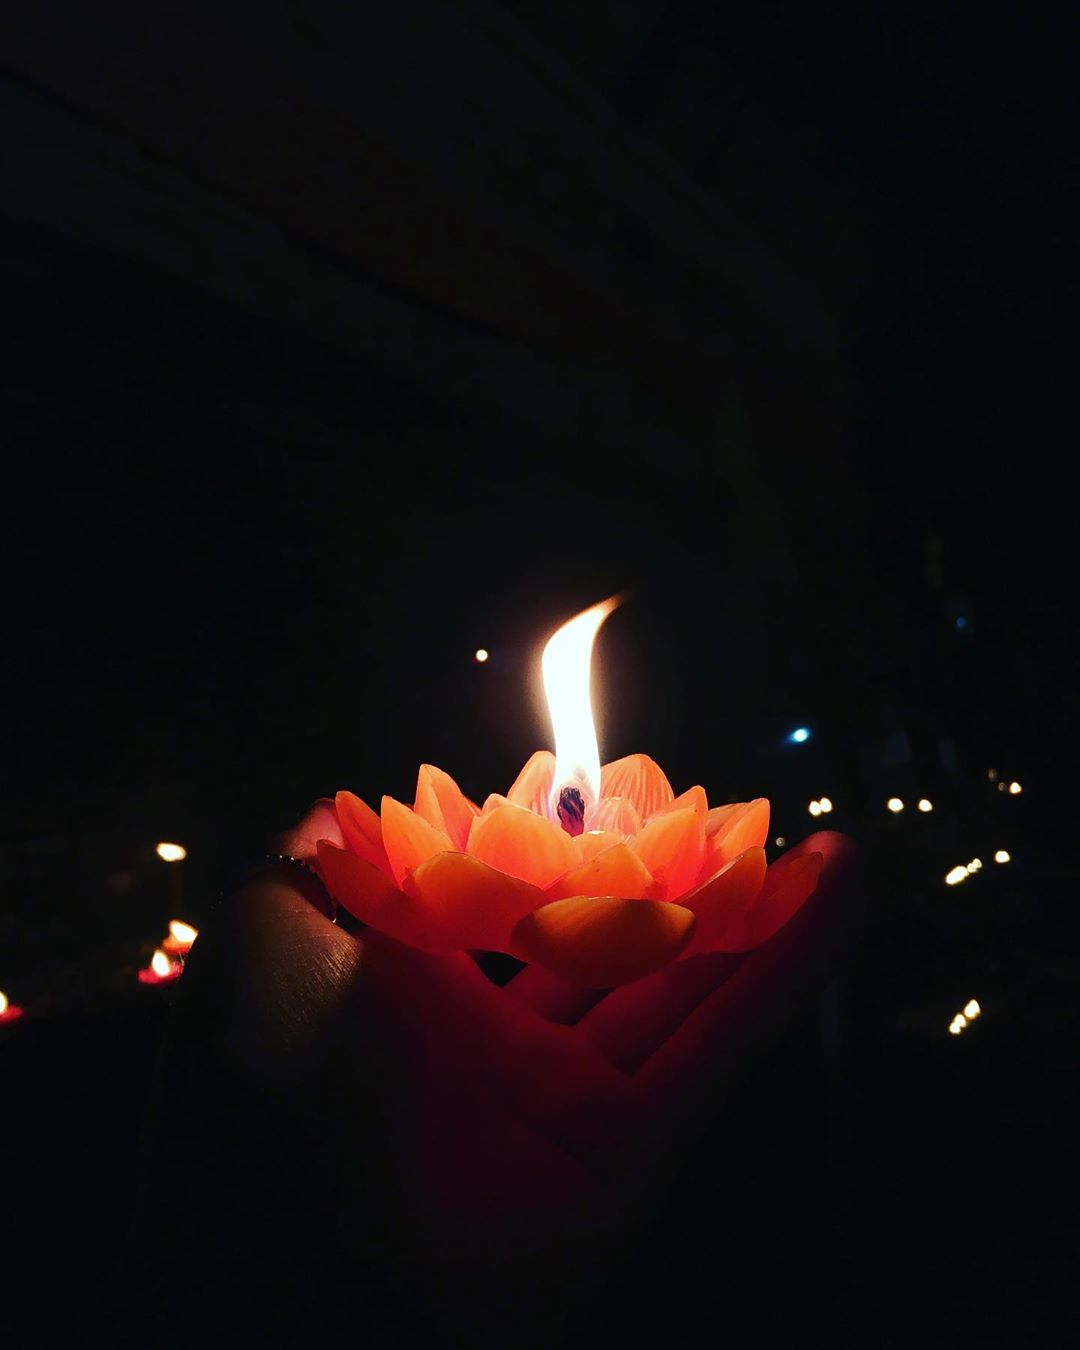 Floating Krathong resembling a lotus flower with a burning candle inside during Loy Krathong 2019